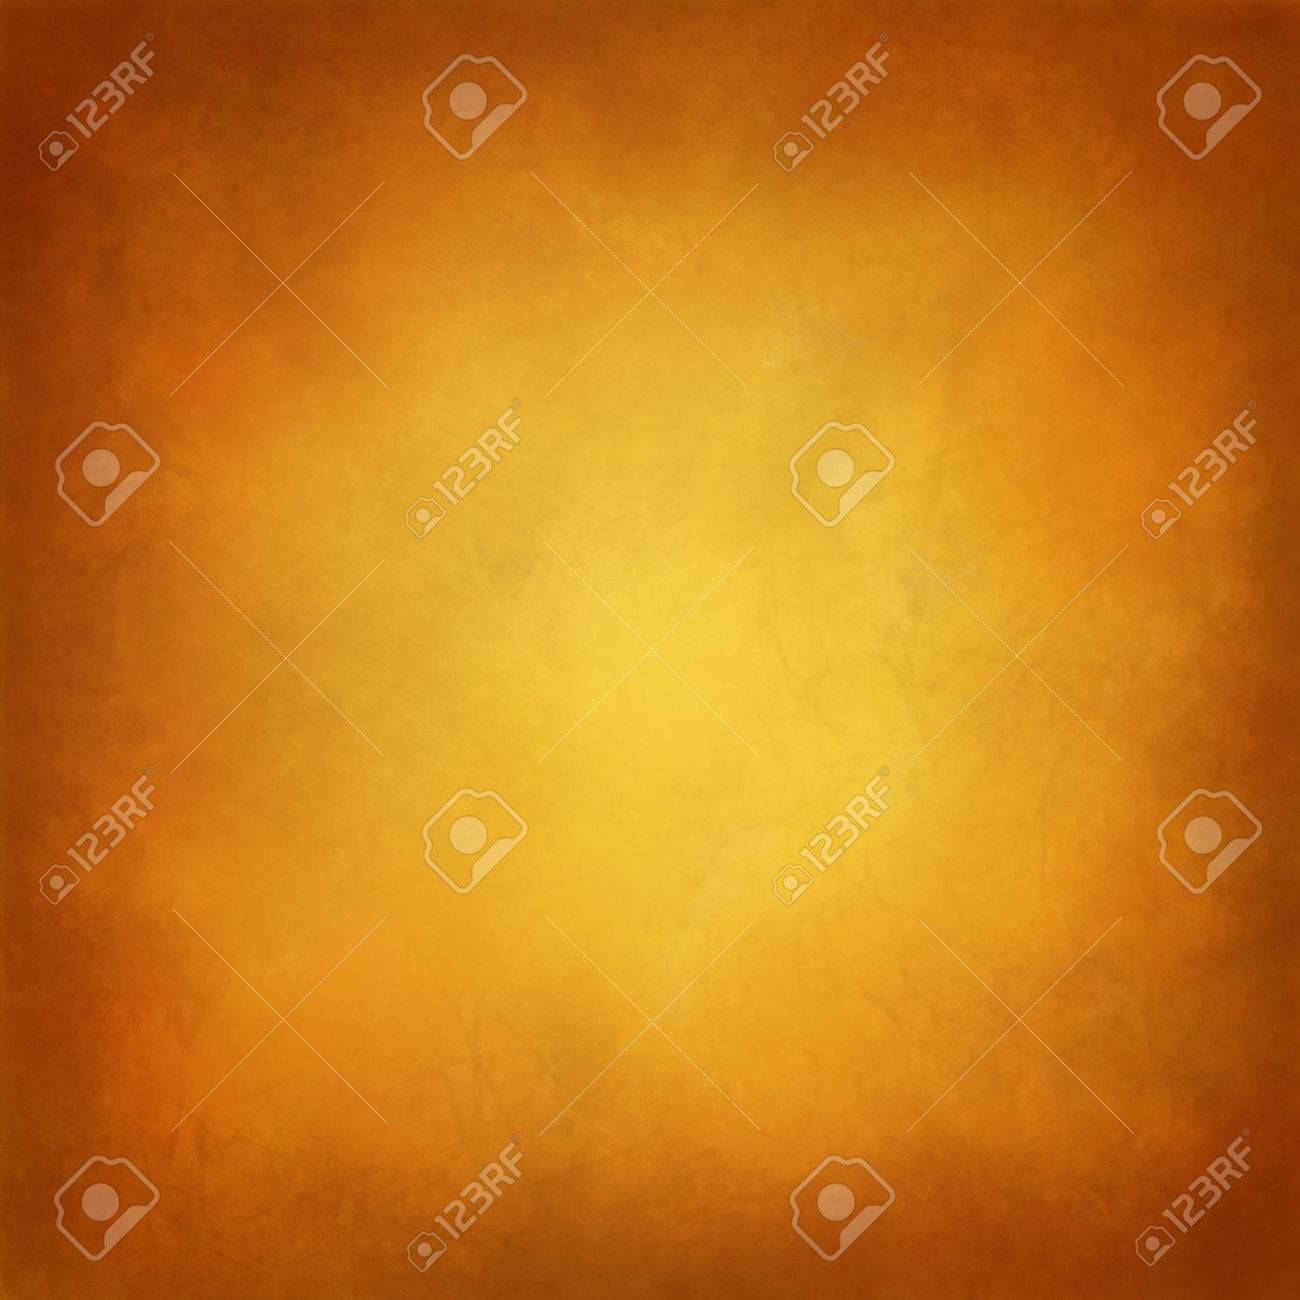 Gold Background With Orange And Brown Hues In Tuscan Style ...